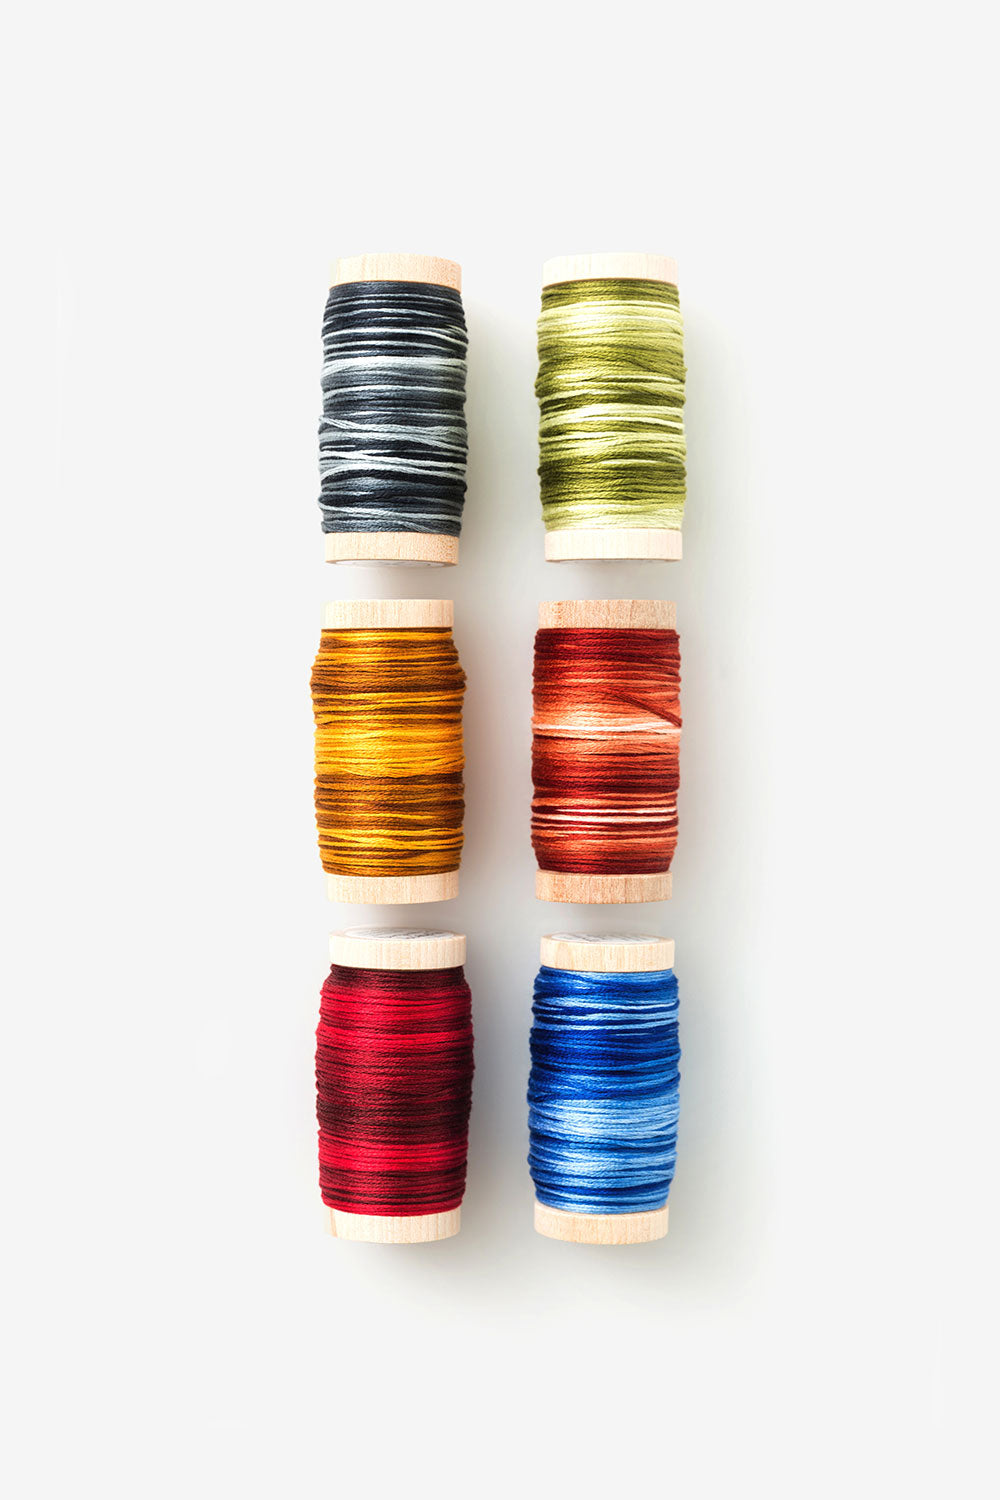 The School of Making Variegated Embroidery Floss Primary Floss Colors